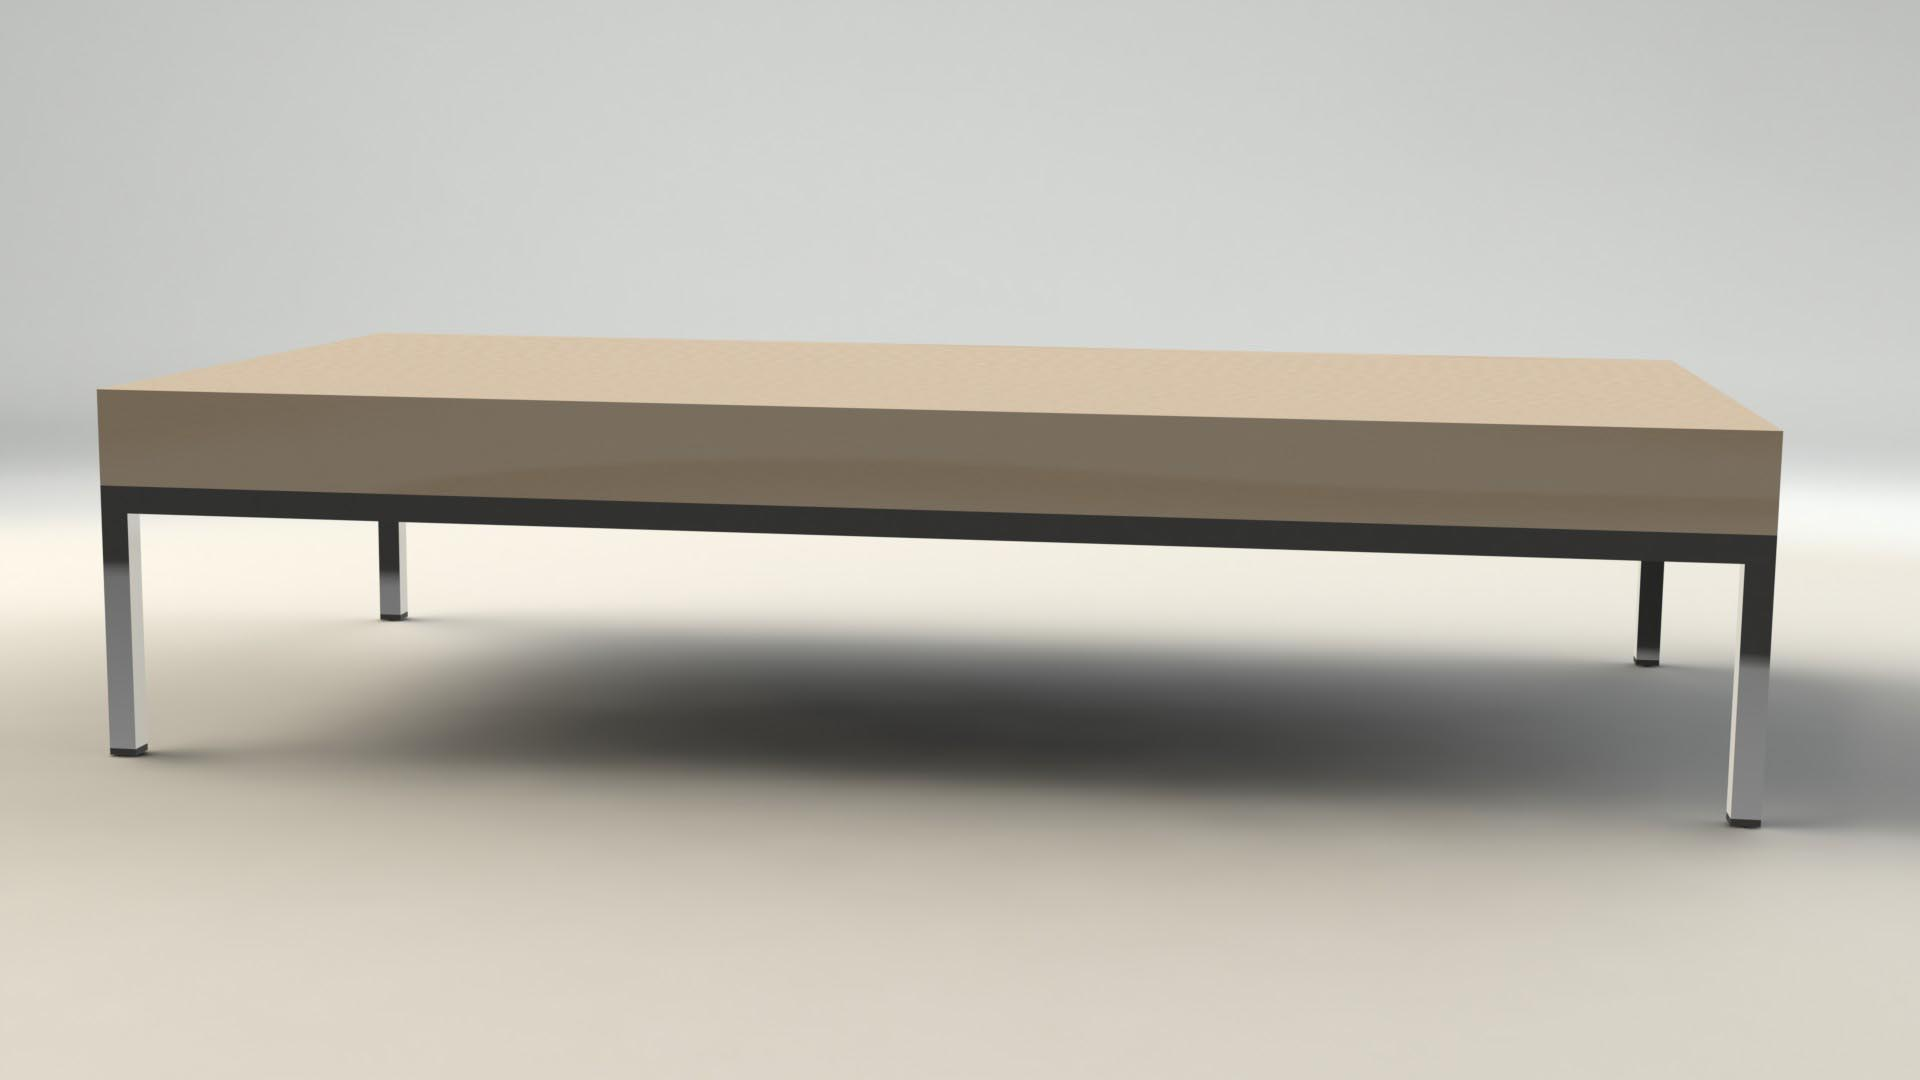 Laptop Couchtisch Low Coffee Table Is An Inalienable Part Of Any Styling